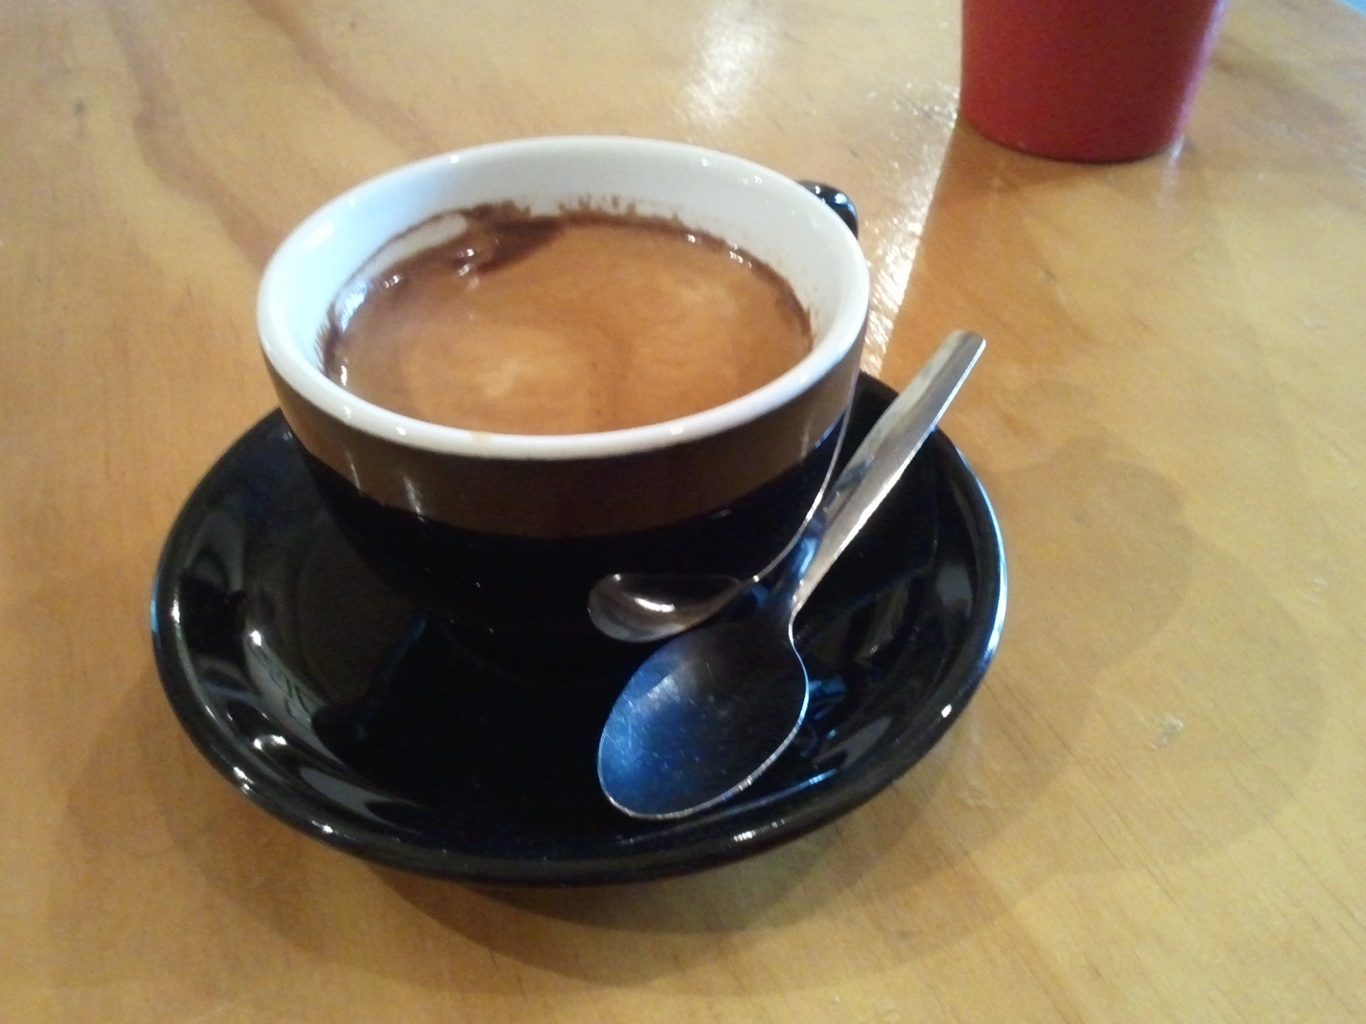 Grindhouse Espresso Coffee